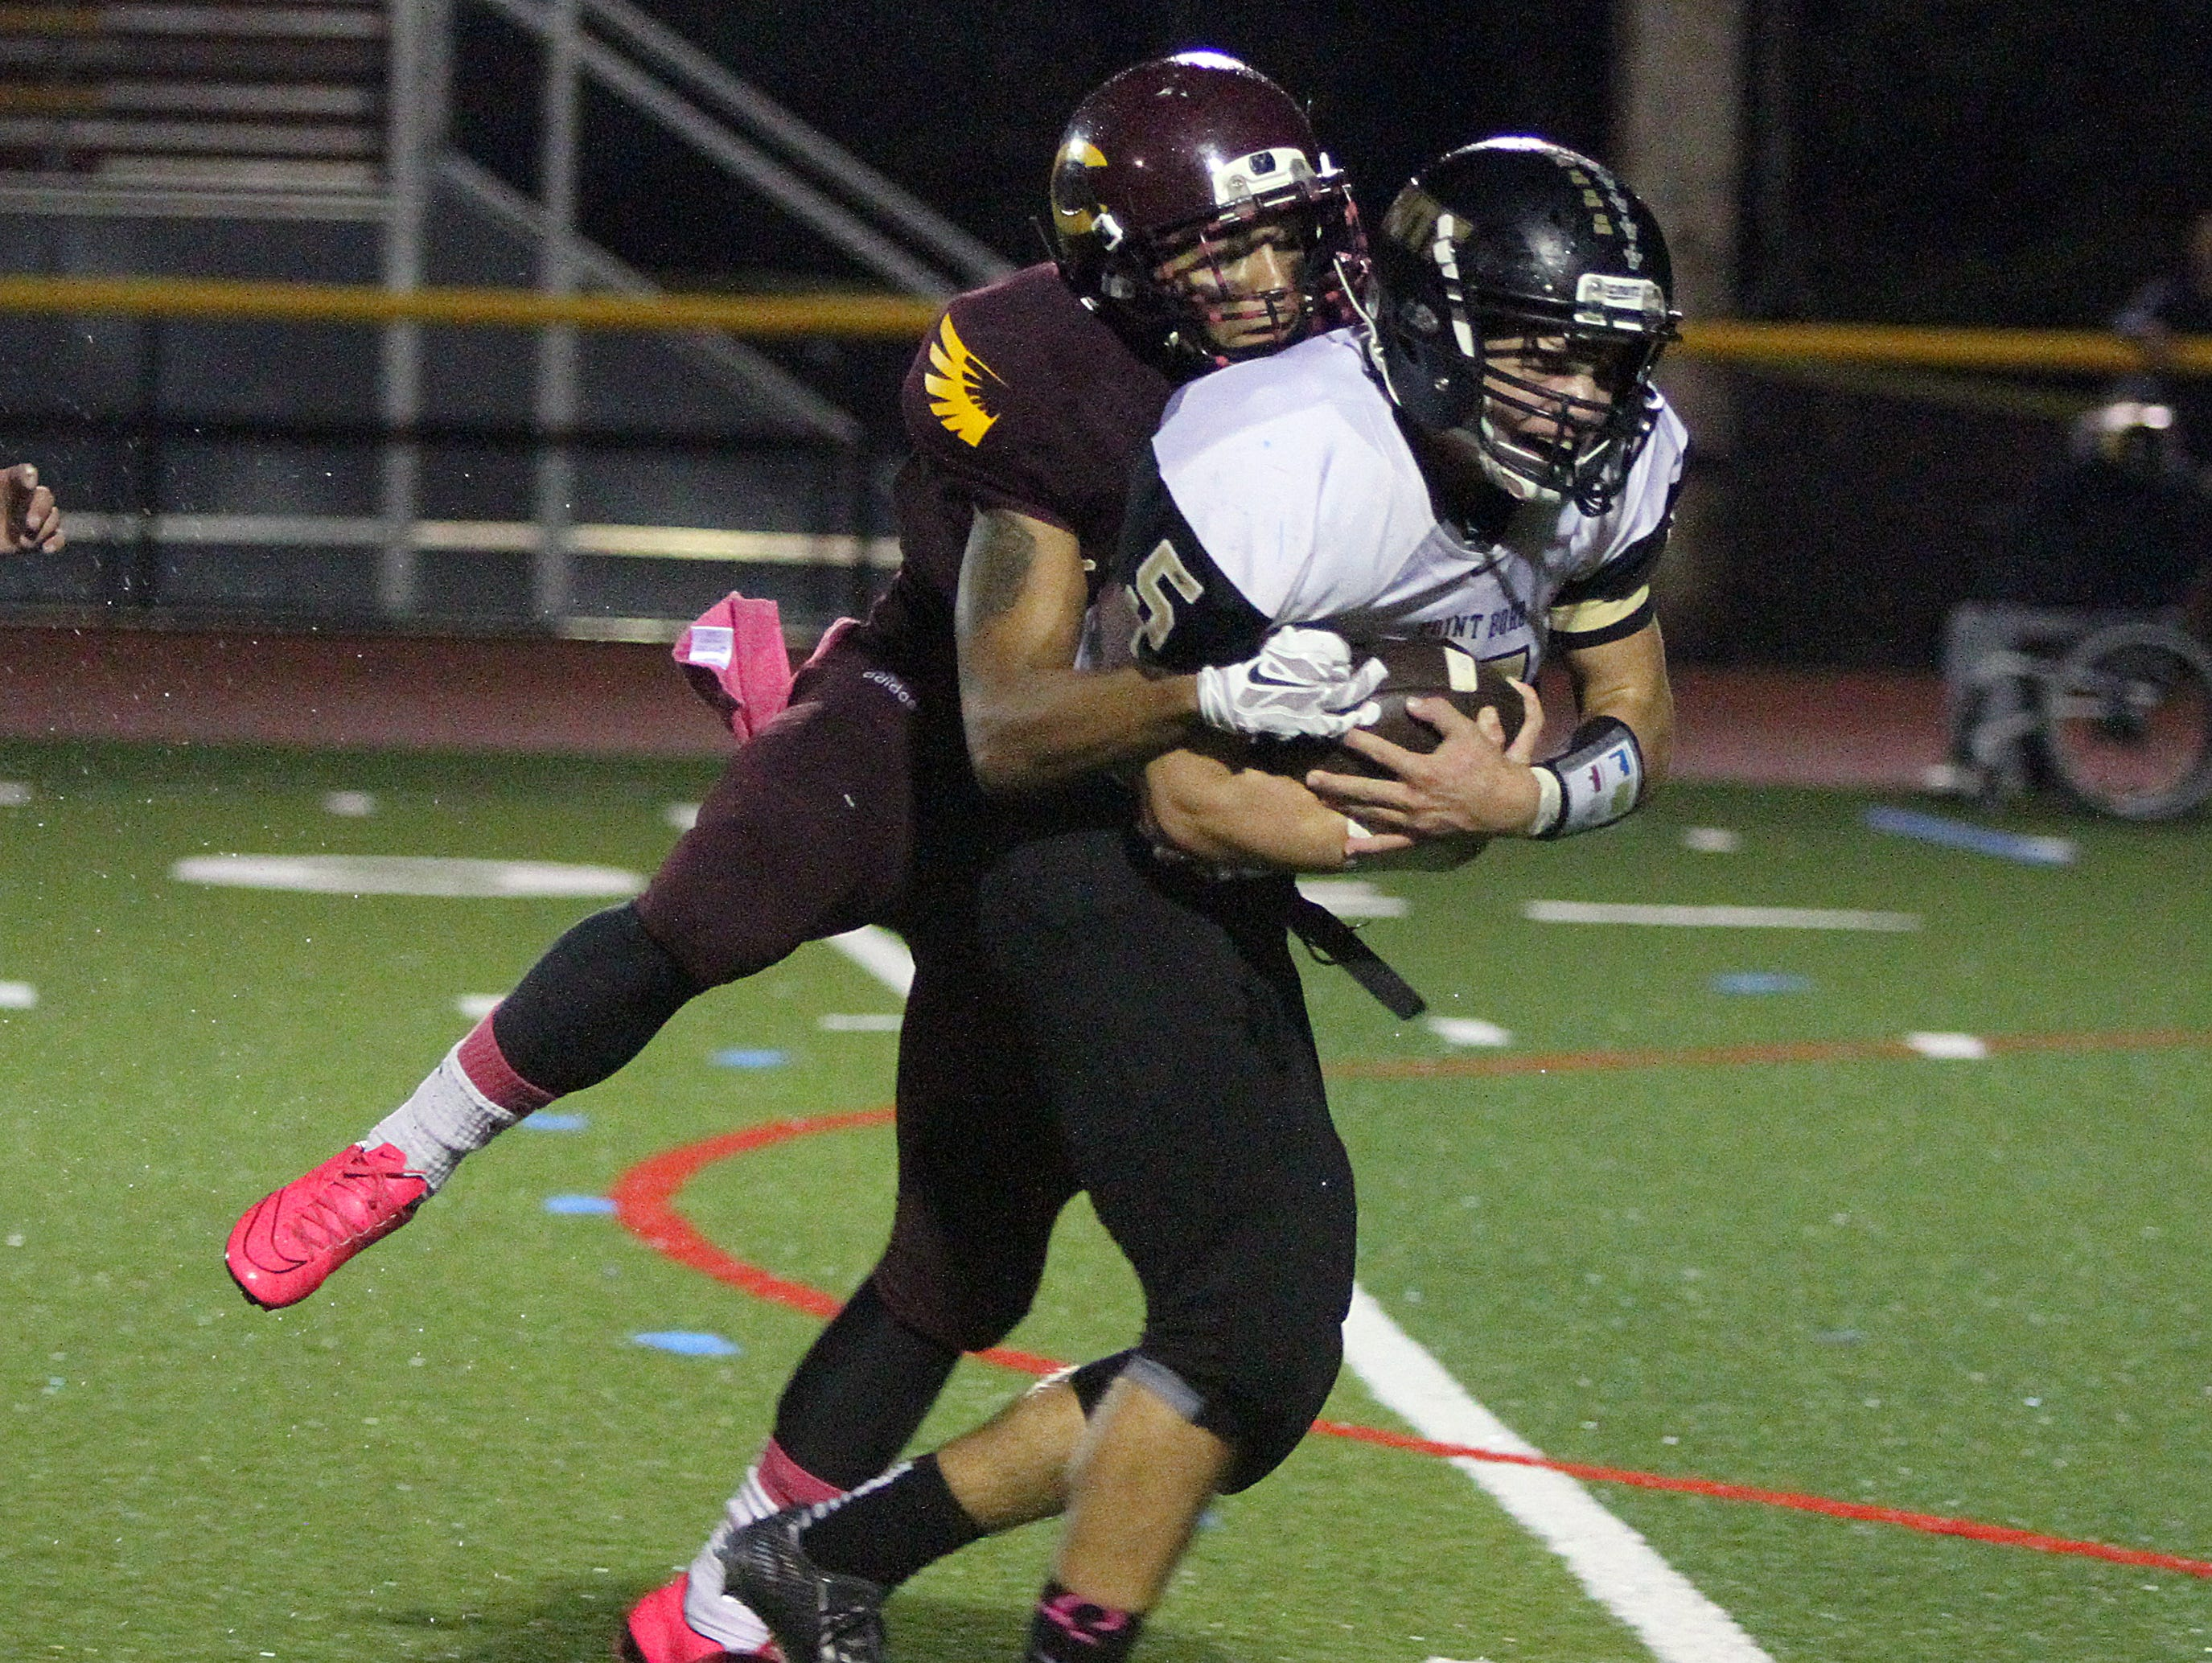 The Point Pleasant Boro Panthers traveled down the Garden State Parkway to take on the Central Regional Golden Eagles in a varsity high school football game on Friday October 9, 2015. Here Pt Pleasant Boro's # 5 (right) Nate Husak is tackled by Central Regional's # 5 (left)- Michael Miserendino.